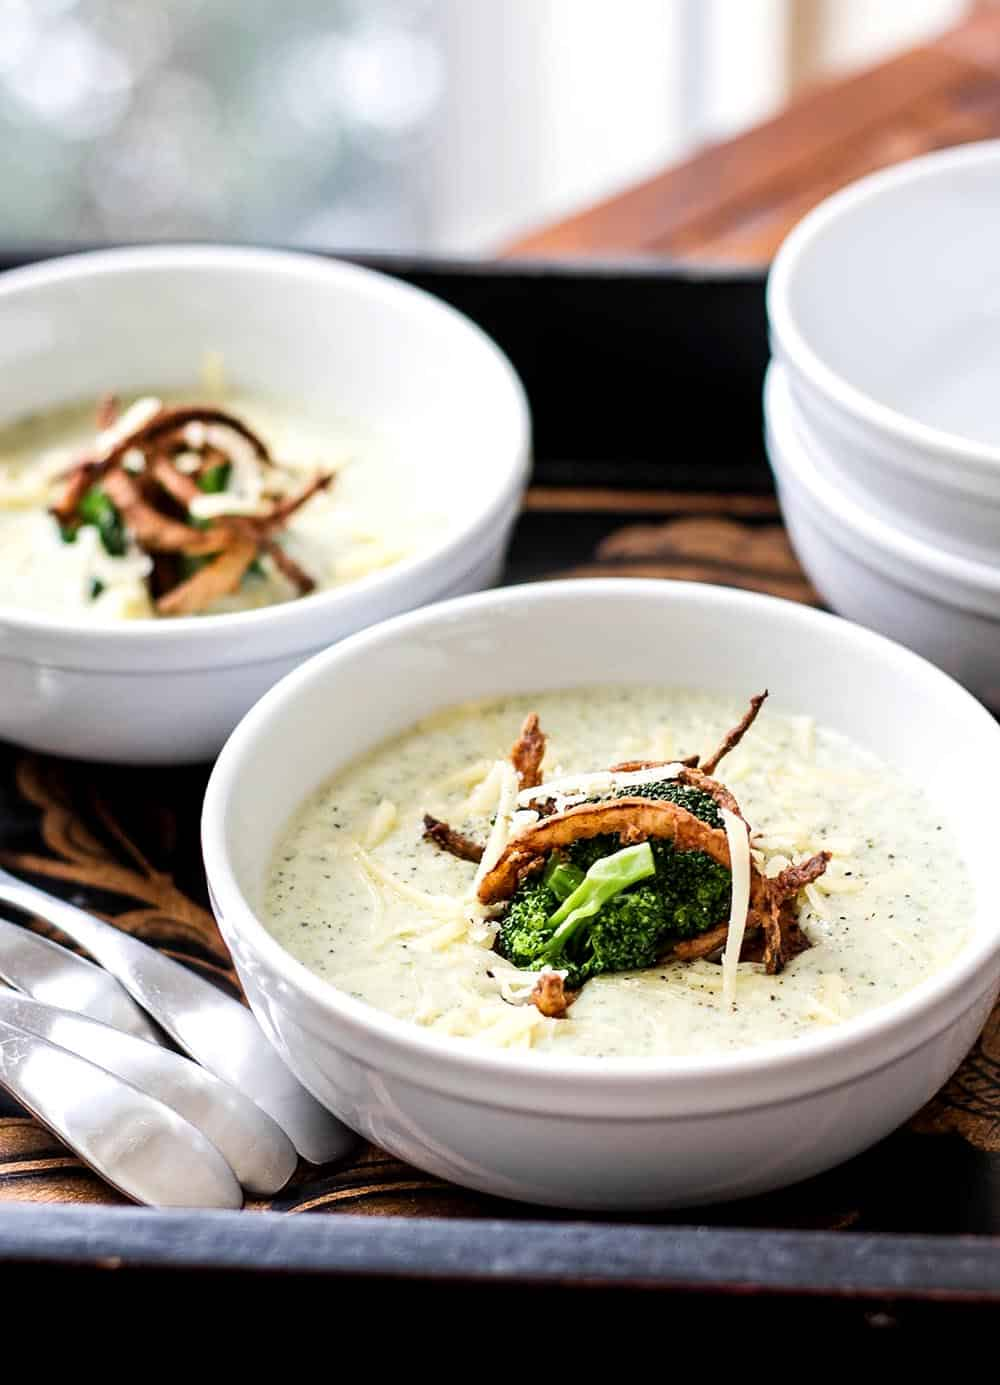 A delicious bowl of broccoli cheese soup topped with crispy onions. Perfect for a cold wintry day!